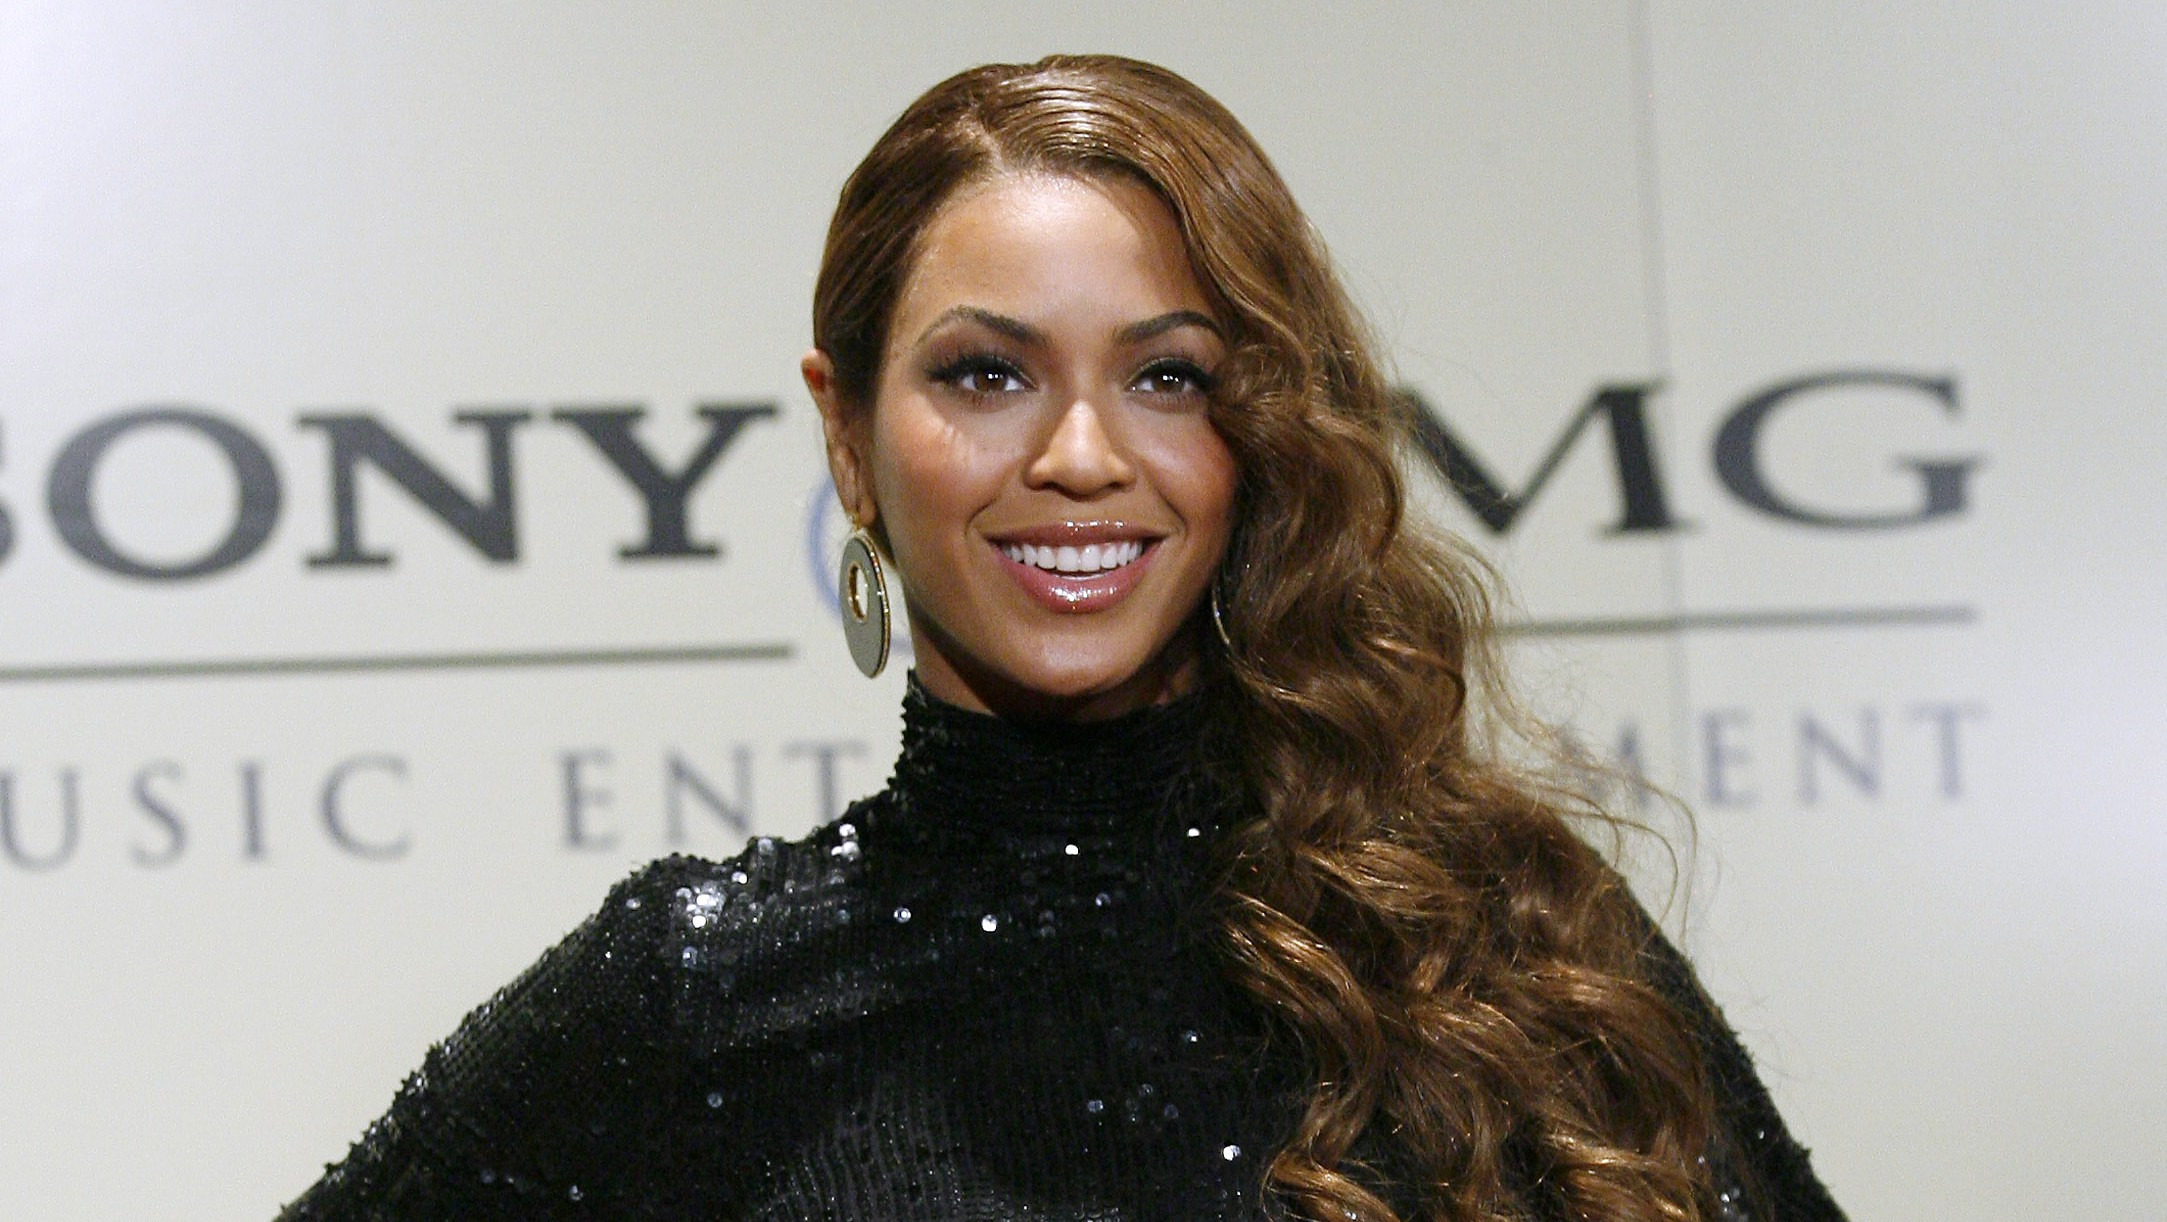 Grammy winning singer Beyonce Knowles arrives at the Sony BMG Music Entertainment after party in Beverly Hills, February 11, 2007.